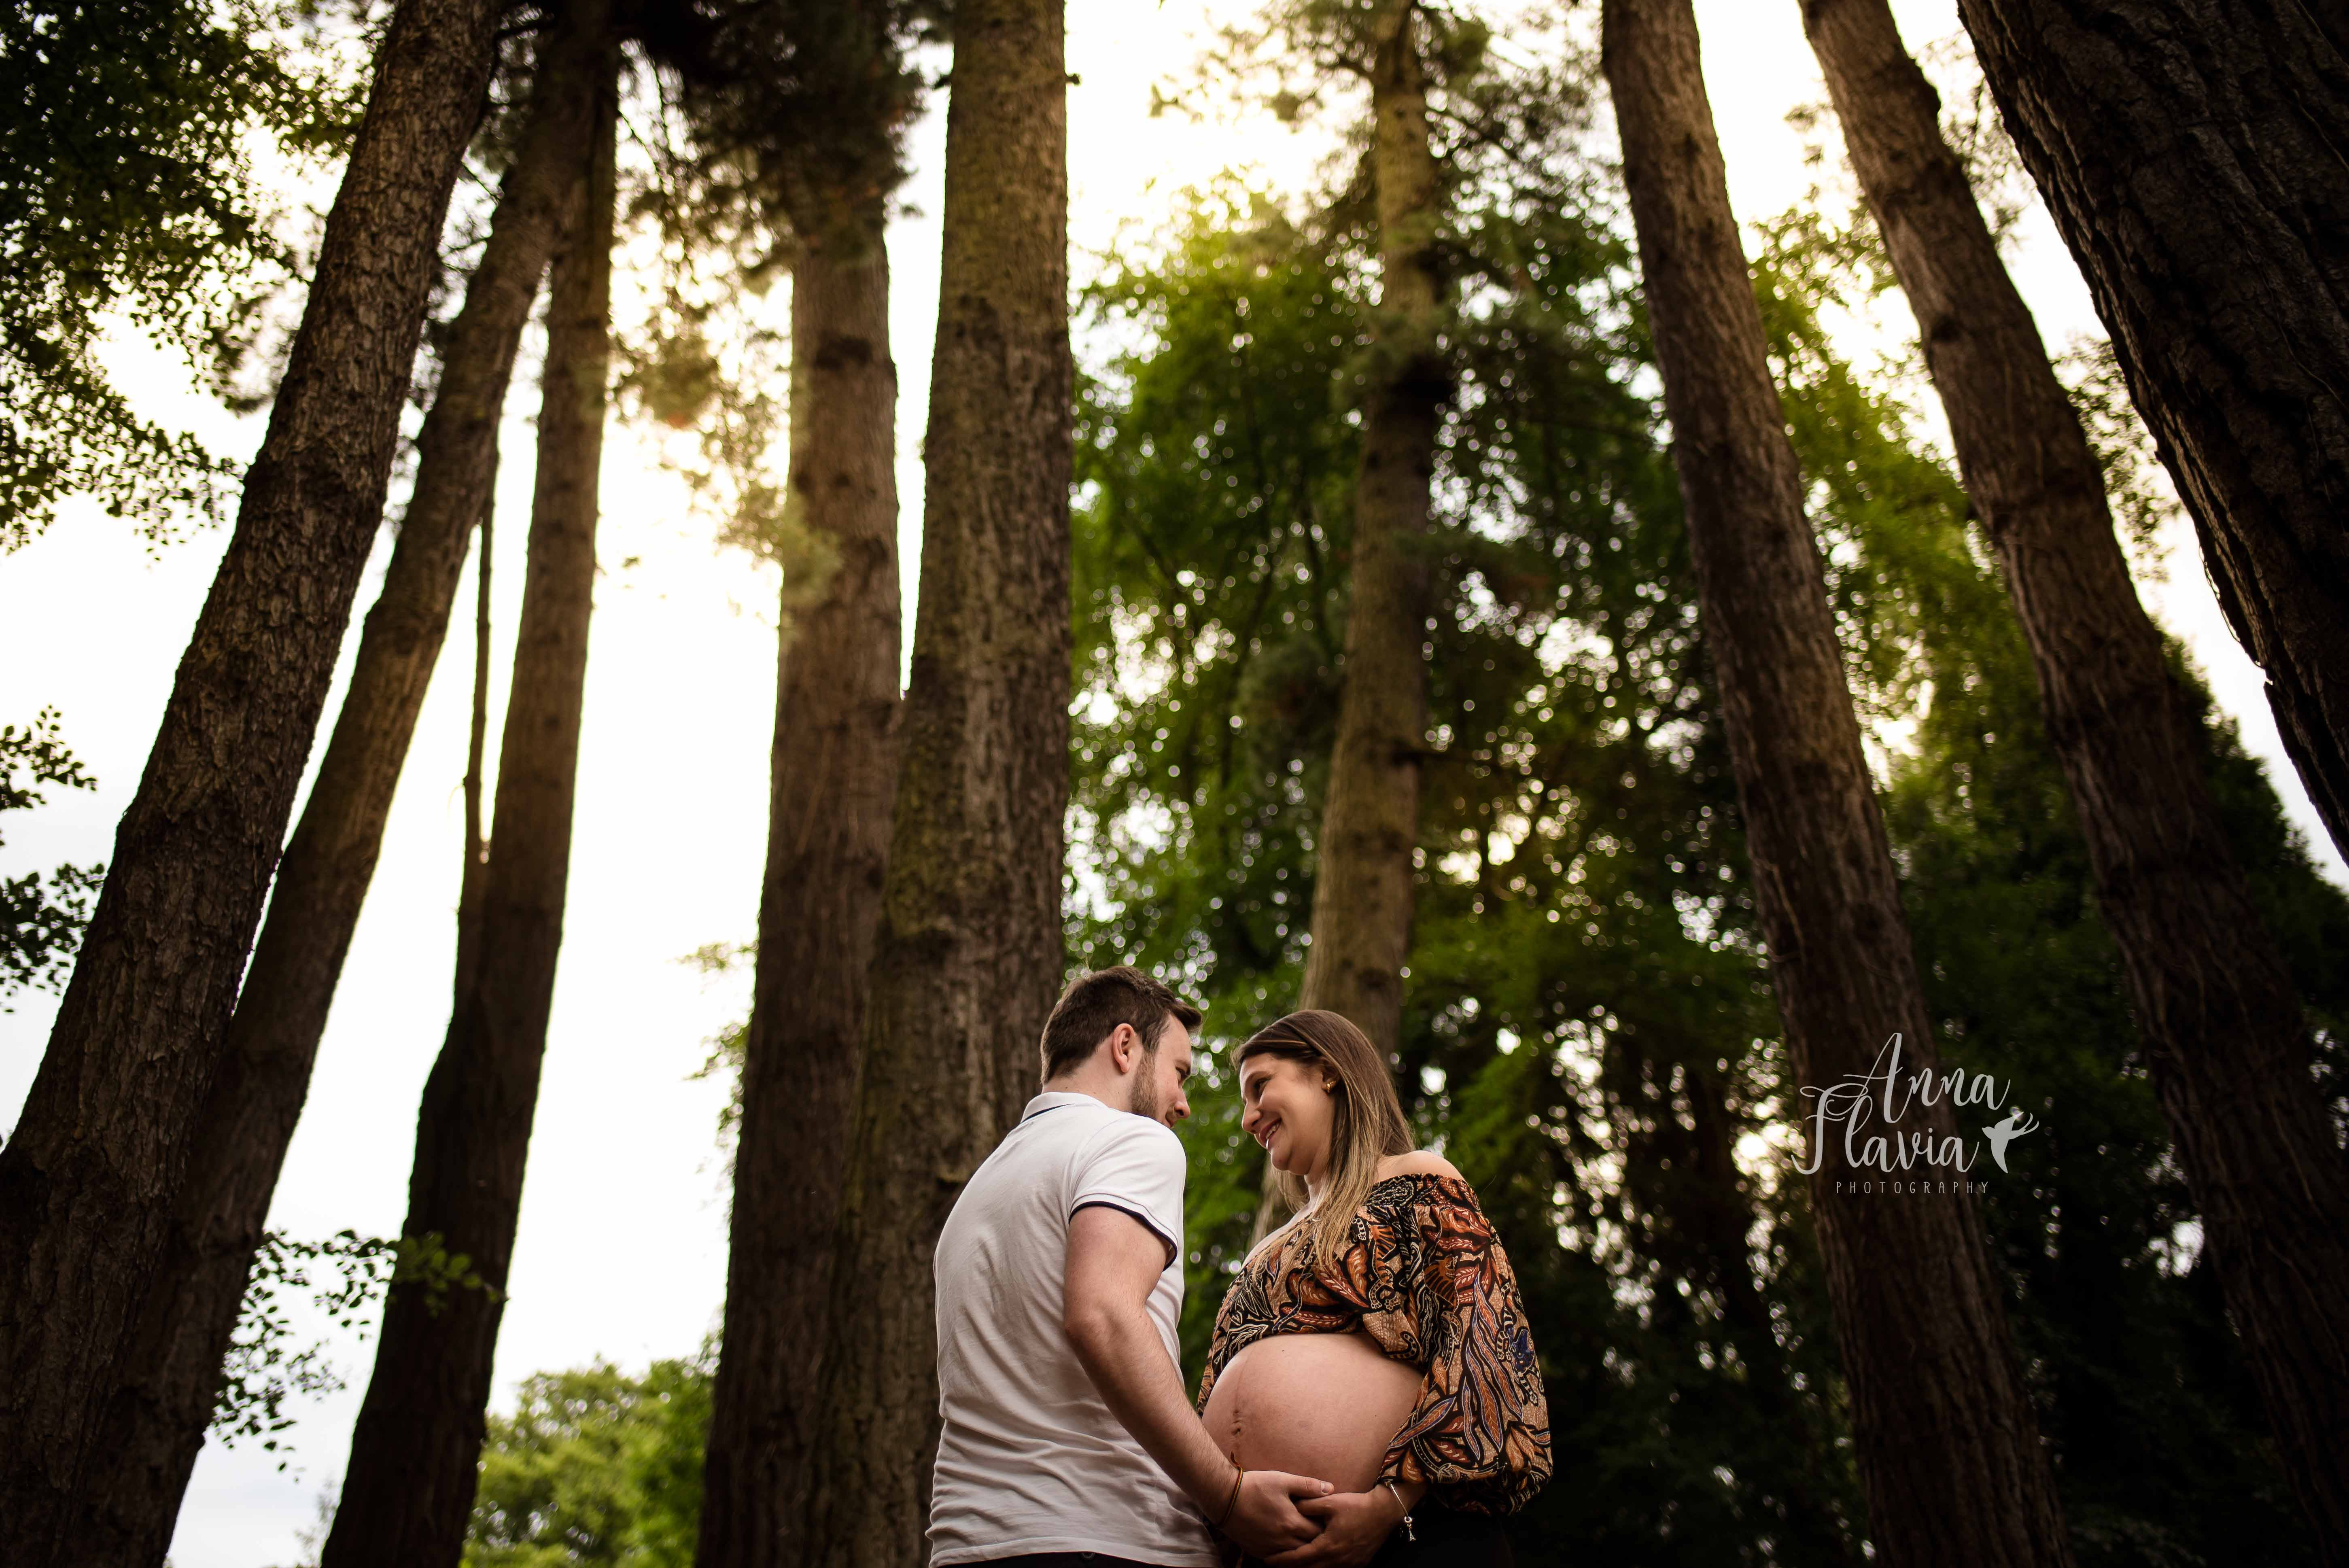 photographer_dublin_anna_flavia_maternity_newborn_family_11